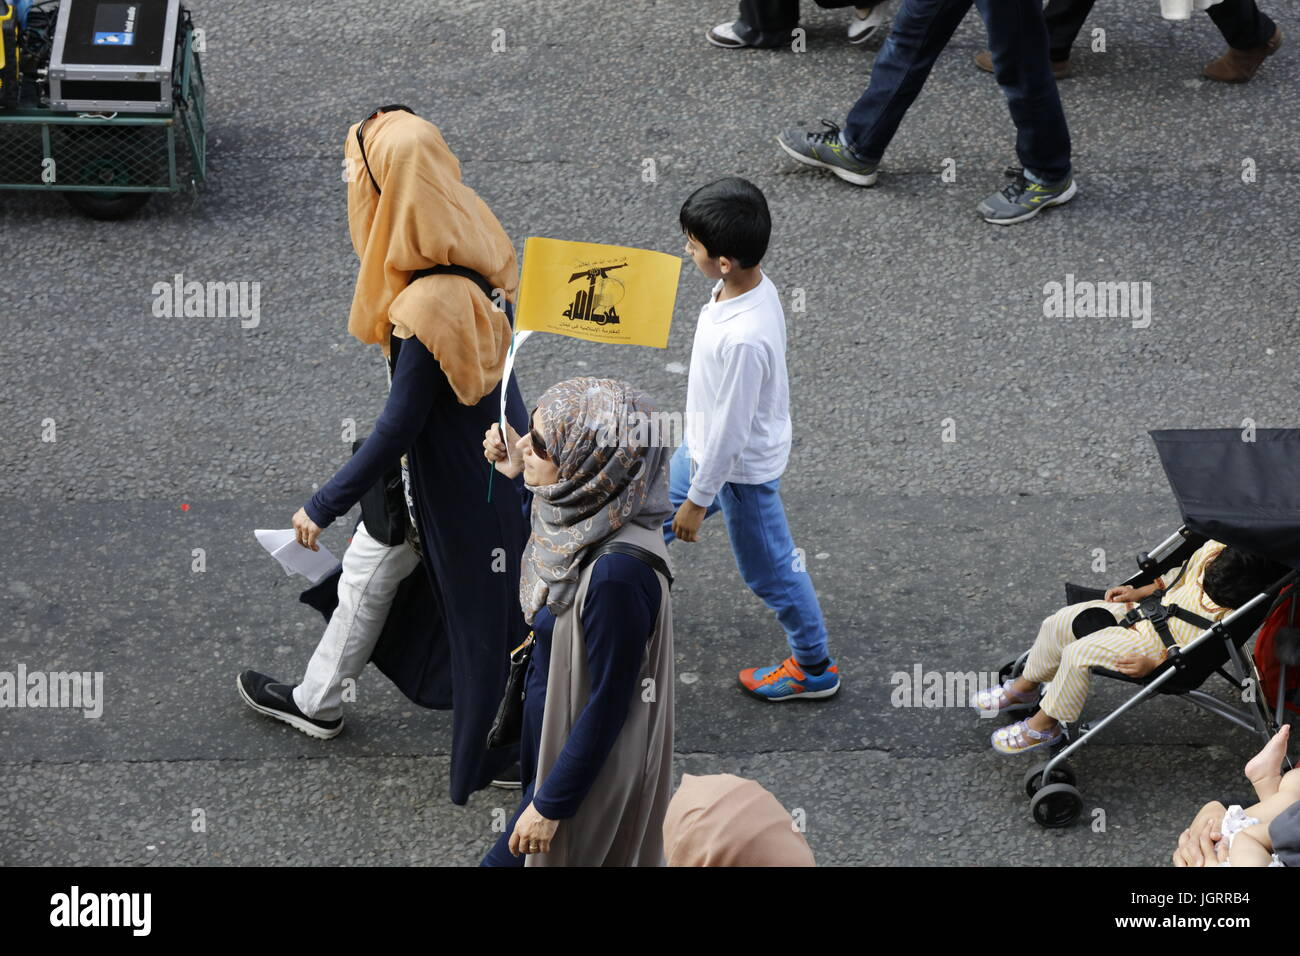 Al Quds Day March in Central London - Stock Image